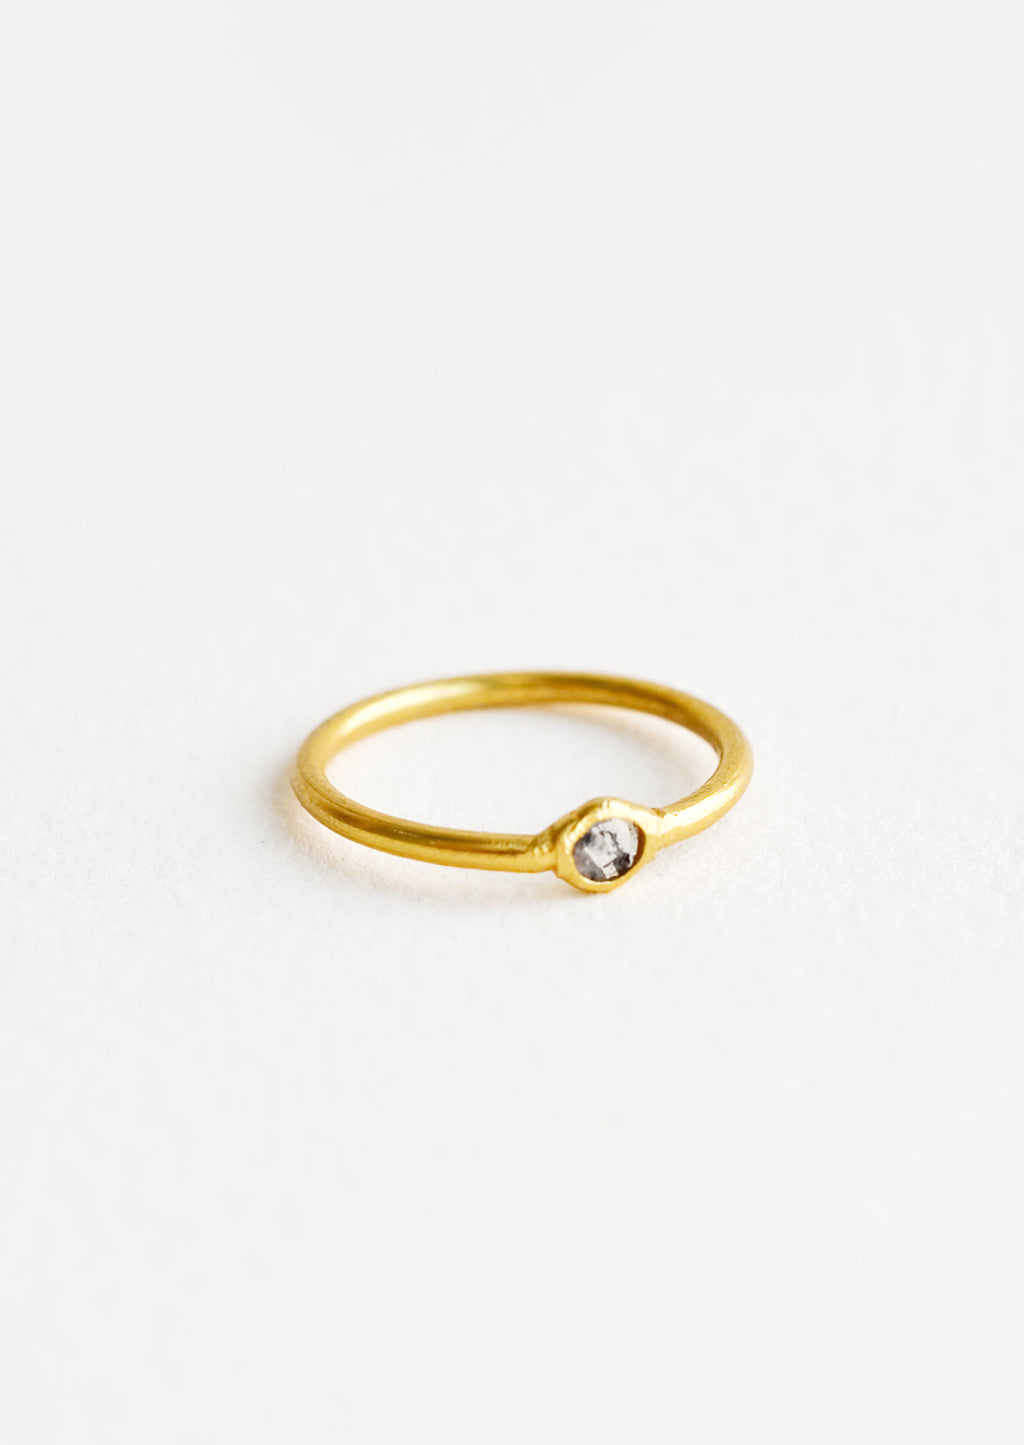 1: Yellow brass ring with a slim band and a small diamond stone.